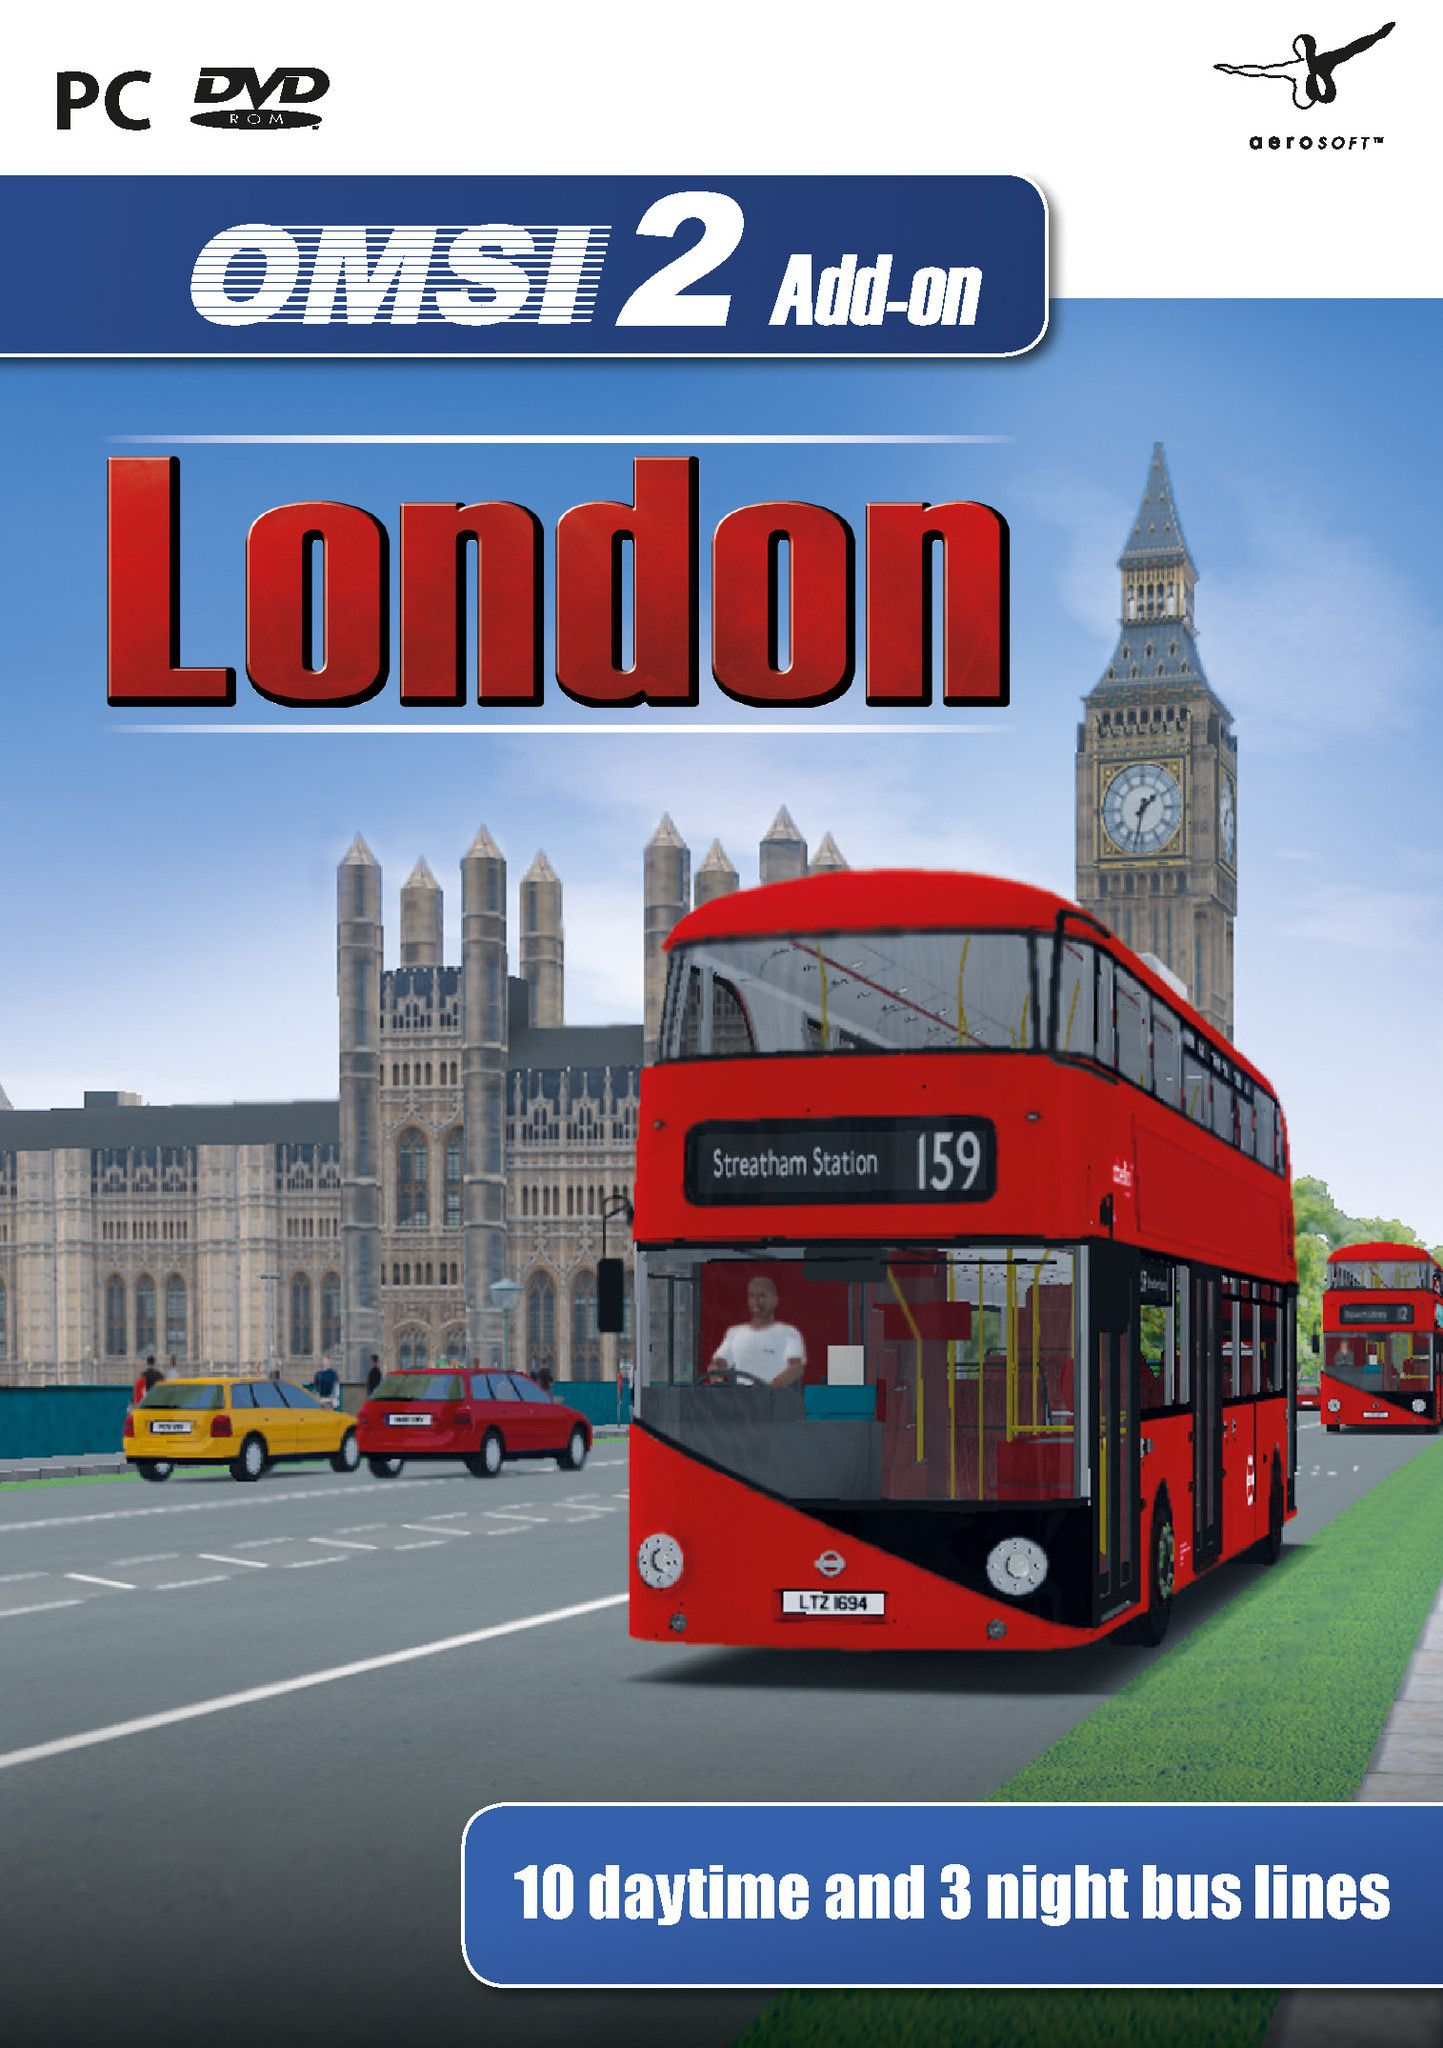 OMSI 2 - Add-on London - Available 21st October – Excalibur